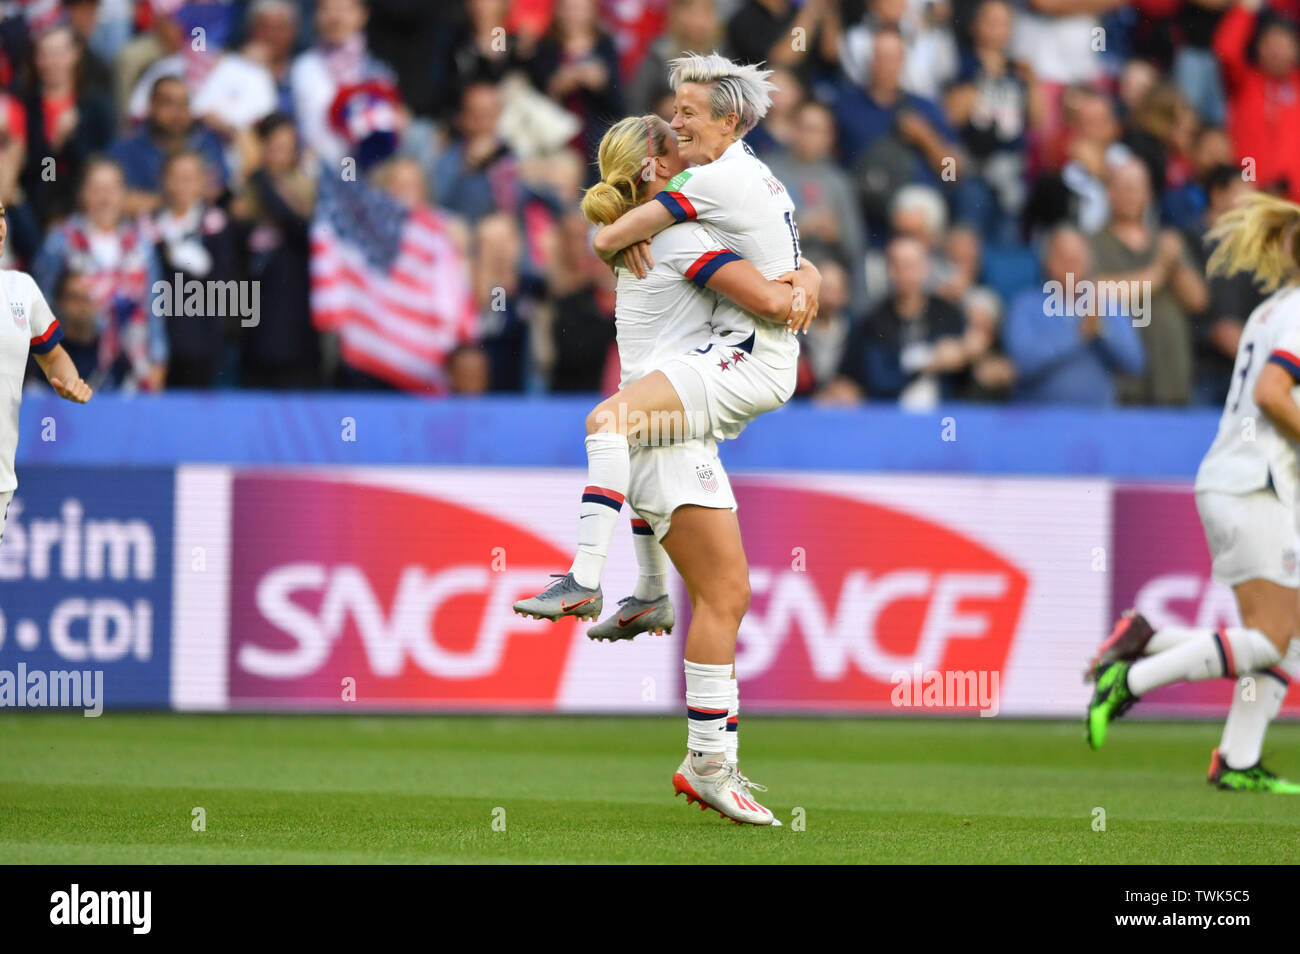 Le Havre, Frankreich. 20th June, 2019. jubilation, Rejoicing, celebrate, happy, cheer, Goal Celebration 0: 1 goalkeeper Lindsey Horan (USA) (9) wears Megan Rapinoe (USA) (15), 20.06.2019, Le Havre (France), Football, FIFA Women's World Cup 2019, Sweden - USA, FIFA REGULATIONS PROHIBIT ANY USE OF PHOTOGRAPHS AS IMAGE SEQUENCES AND/OR QUASI VIDEO. | usage worldwide Credit: dpa/Alamy Live News Stock Photo